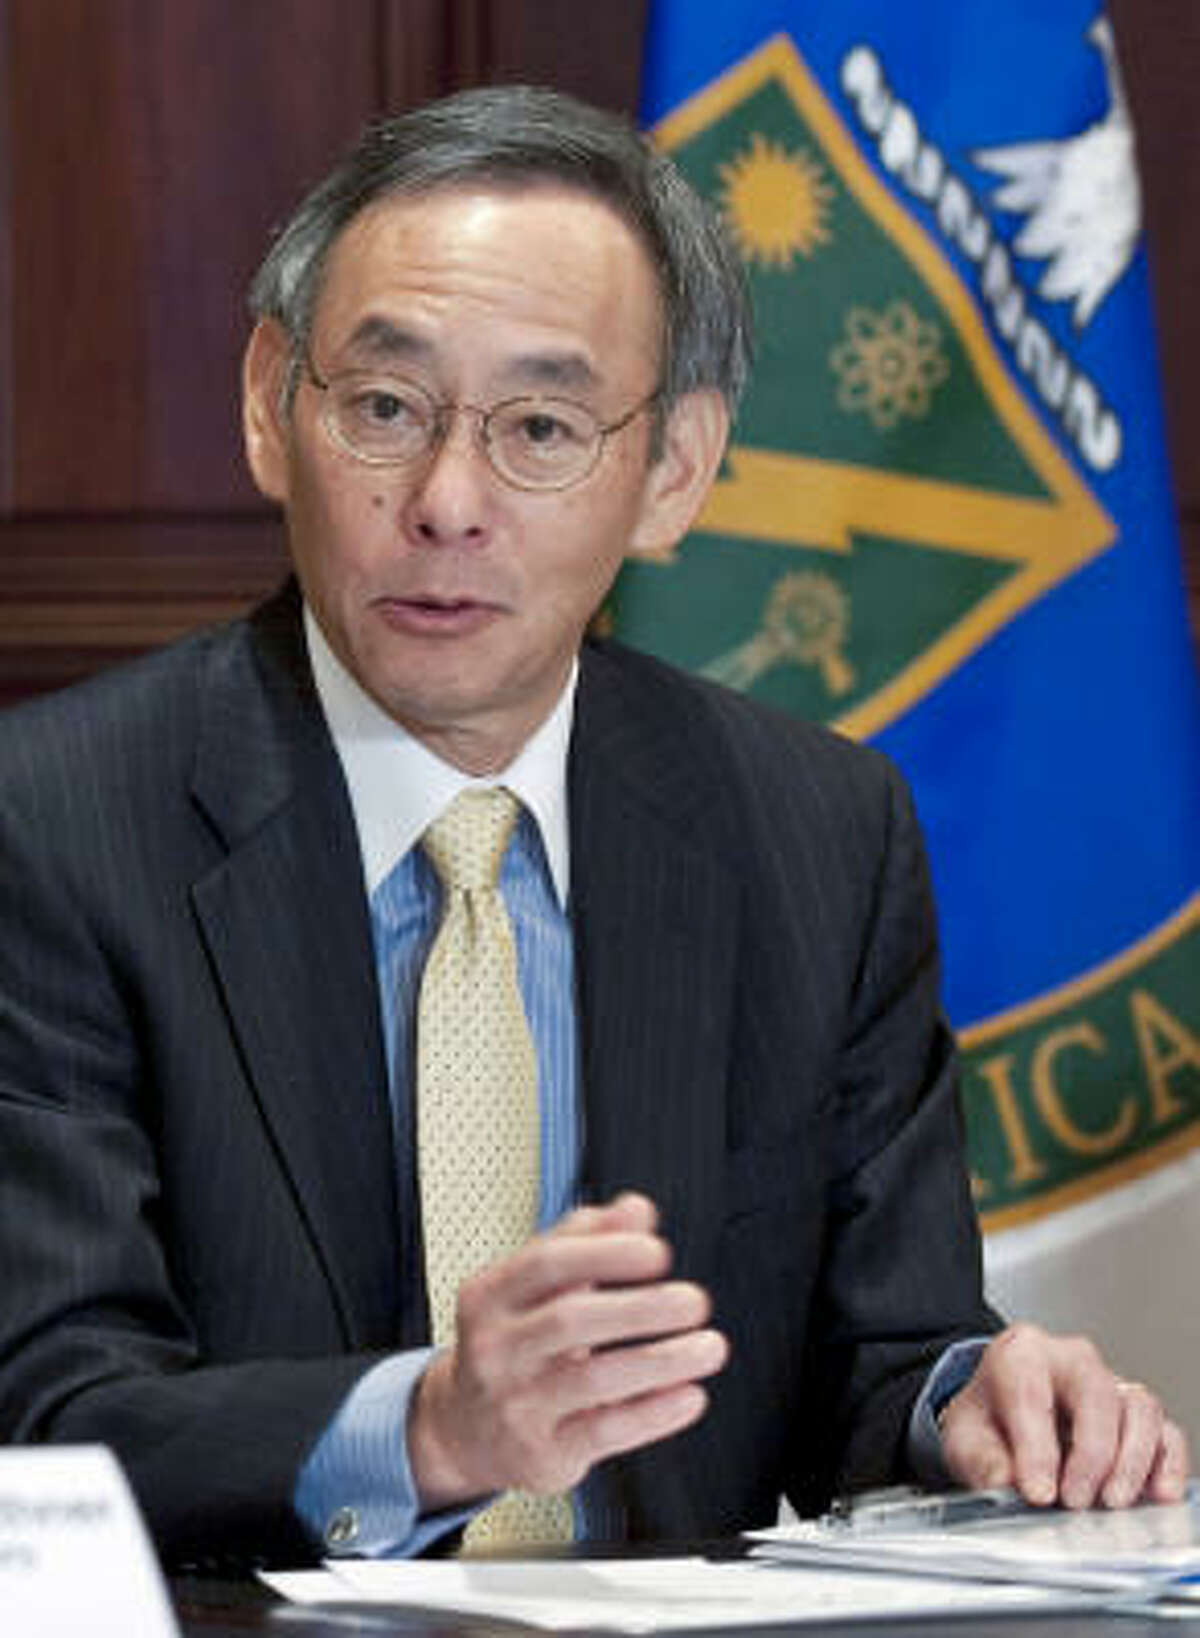 Steven Chu, U.S. energy secretary, announces cash awards for renewable energy projects at the Eisenhower Executive Office Building in Washington on Tuesday.